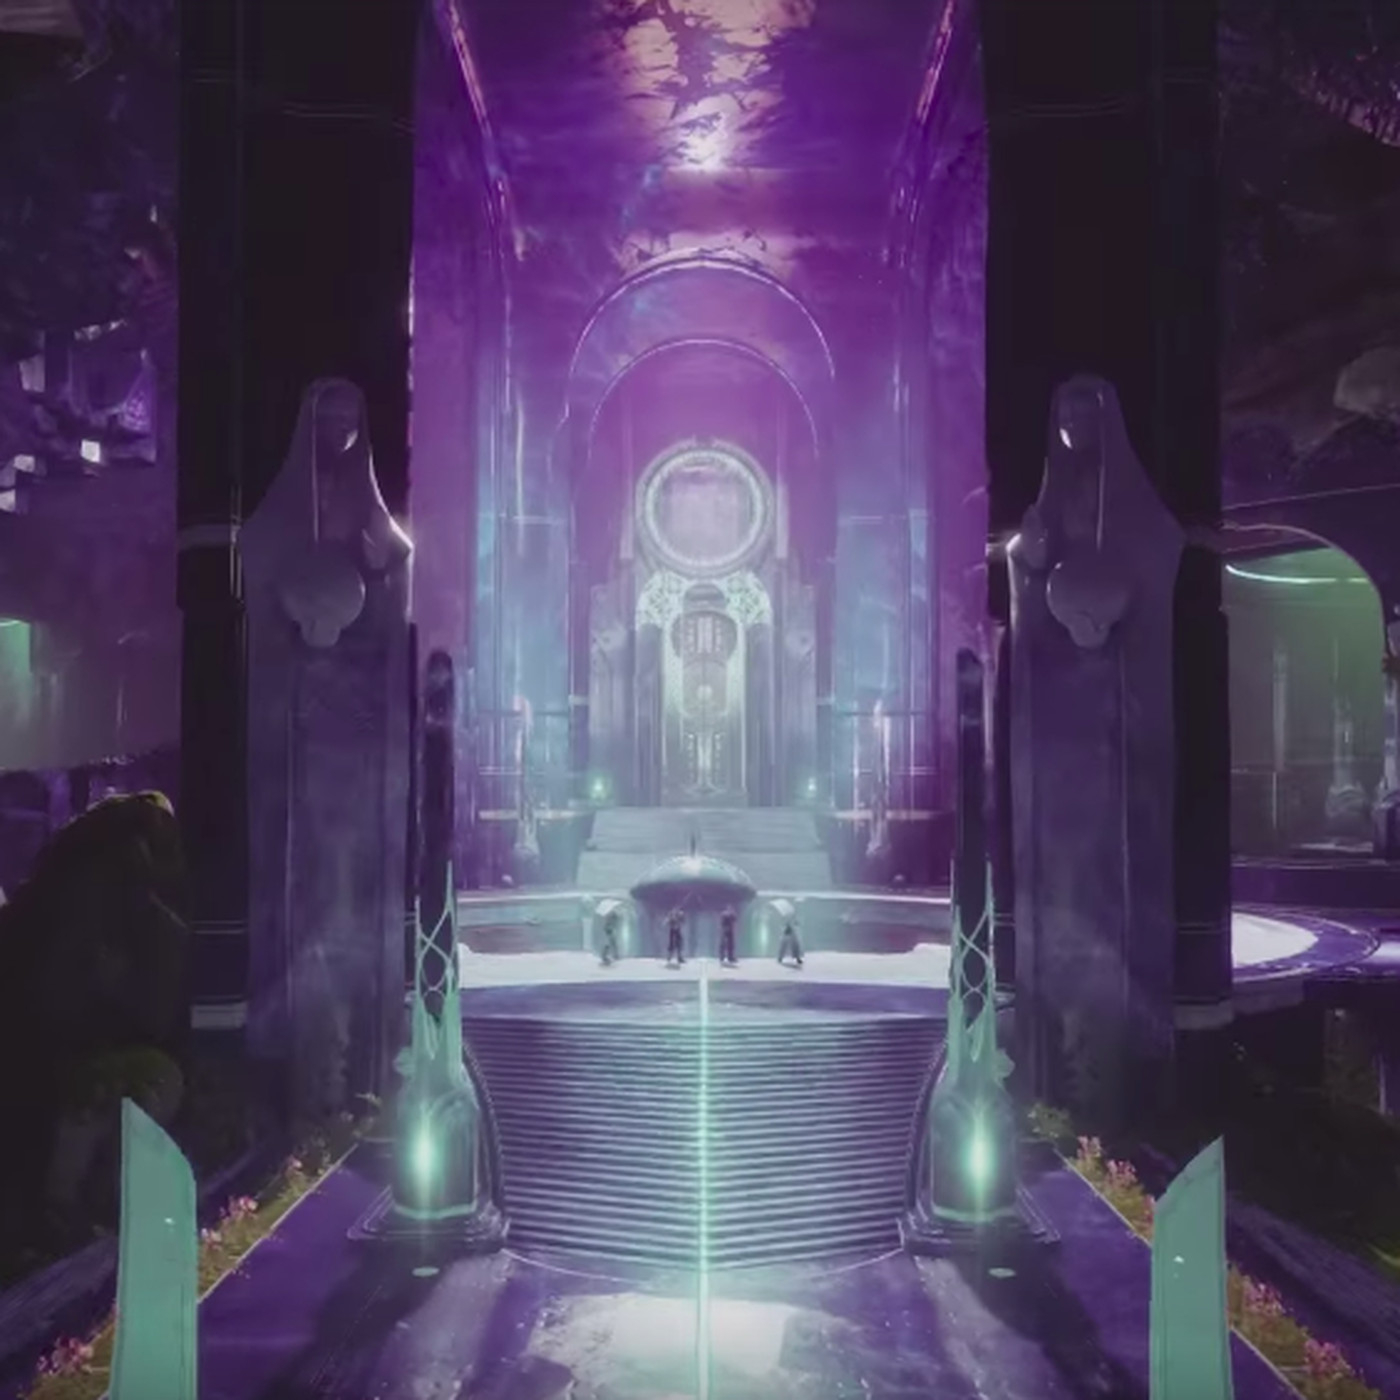 Destiny 2s new Dreaming City will be its largest endgame